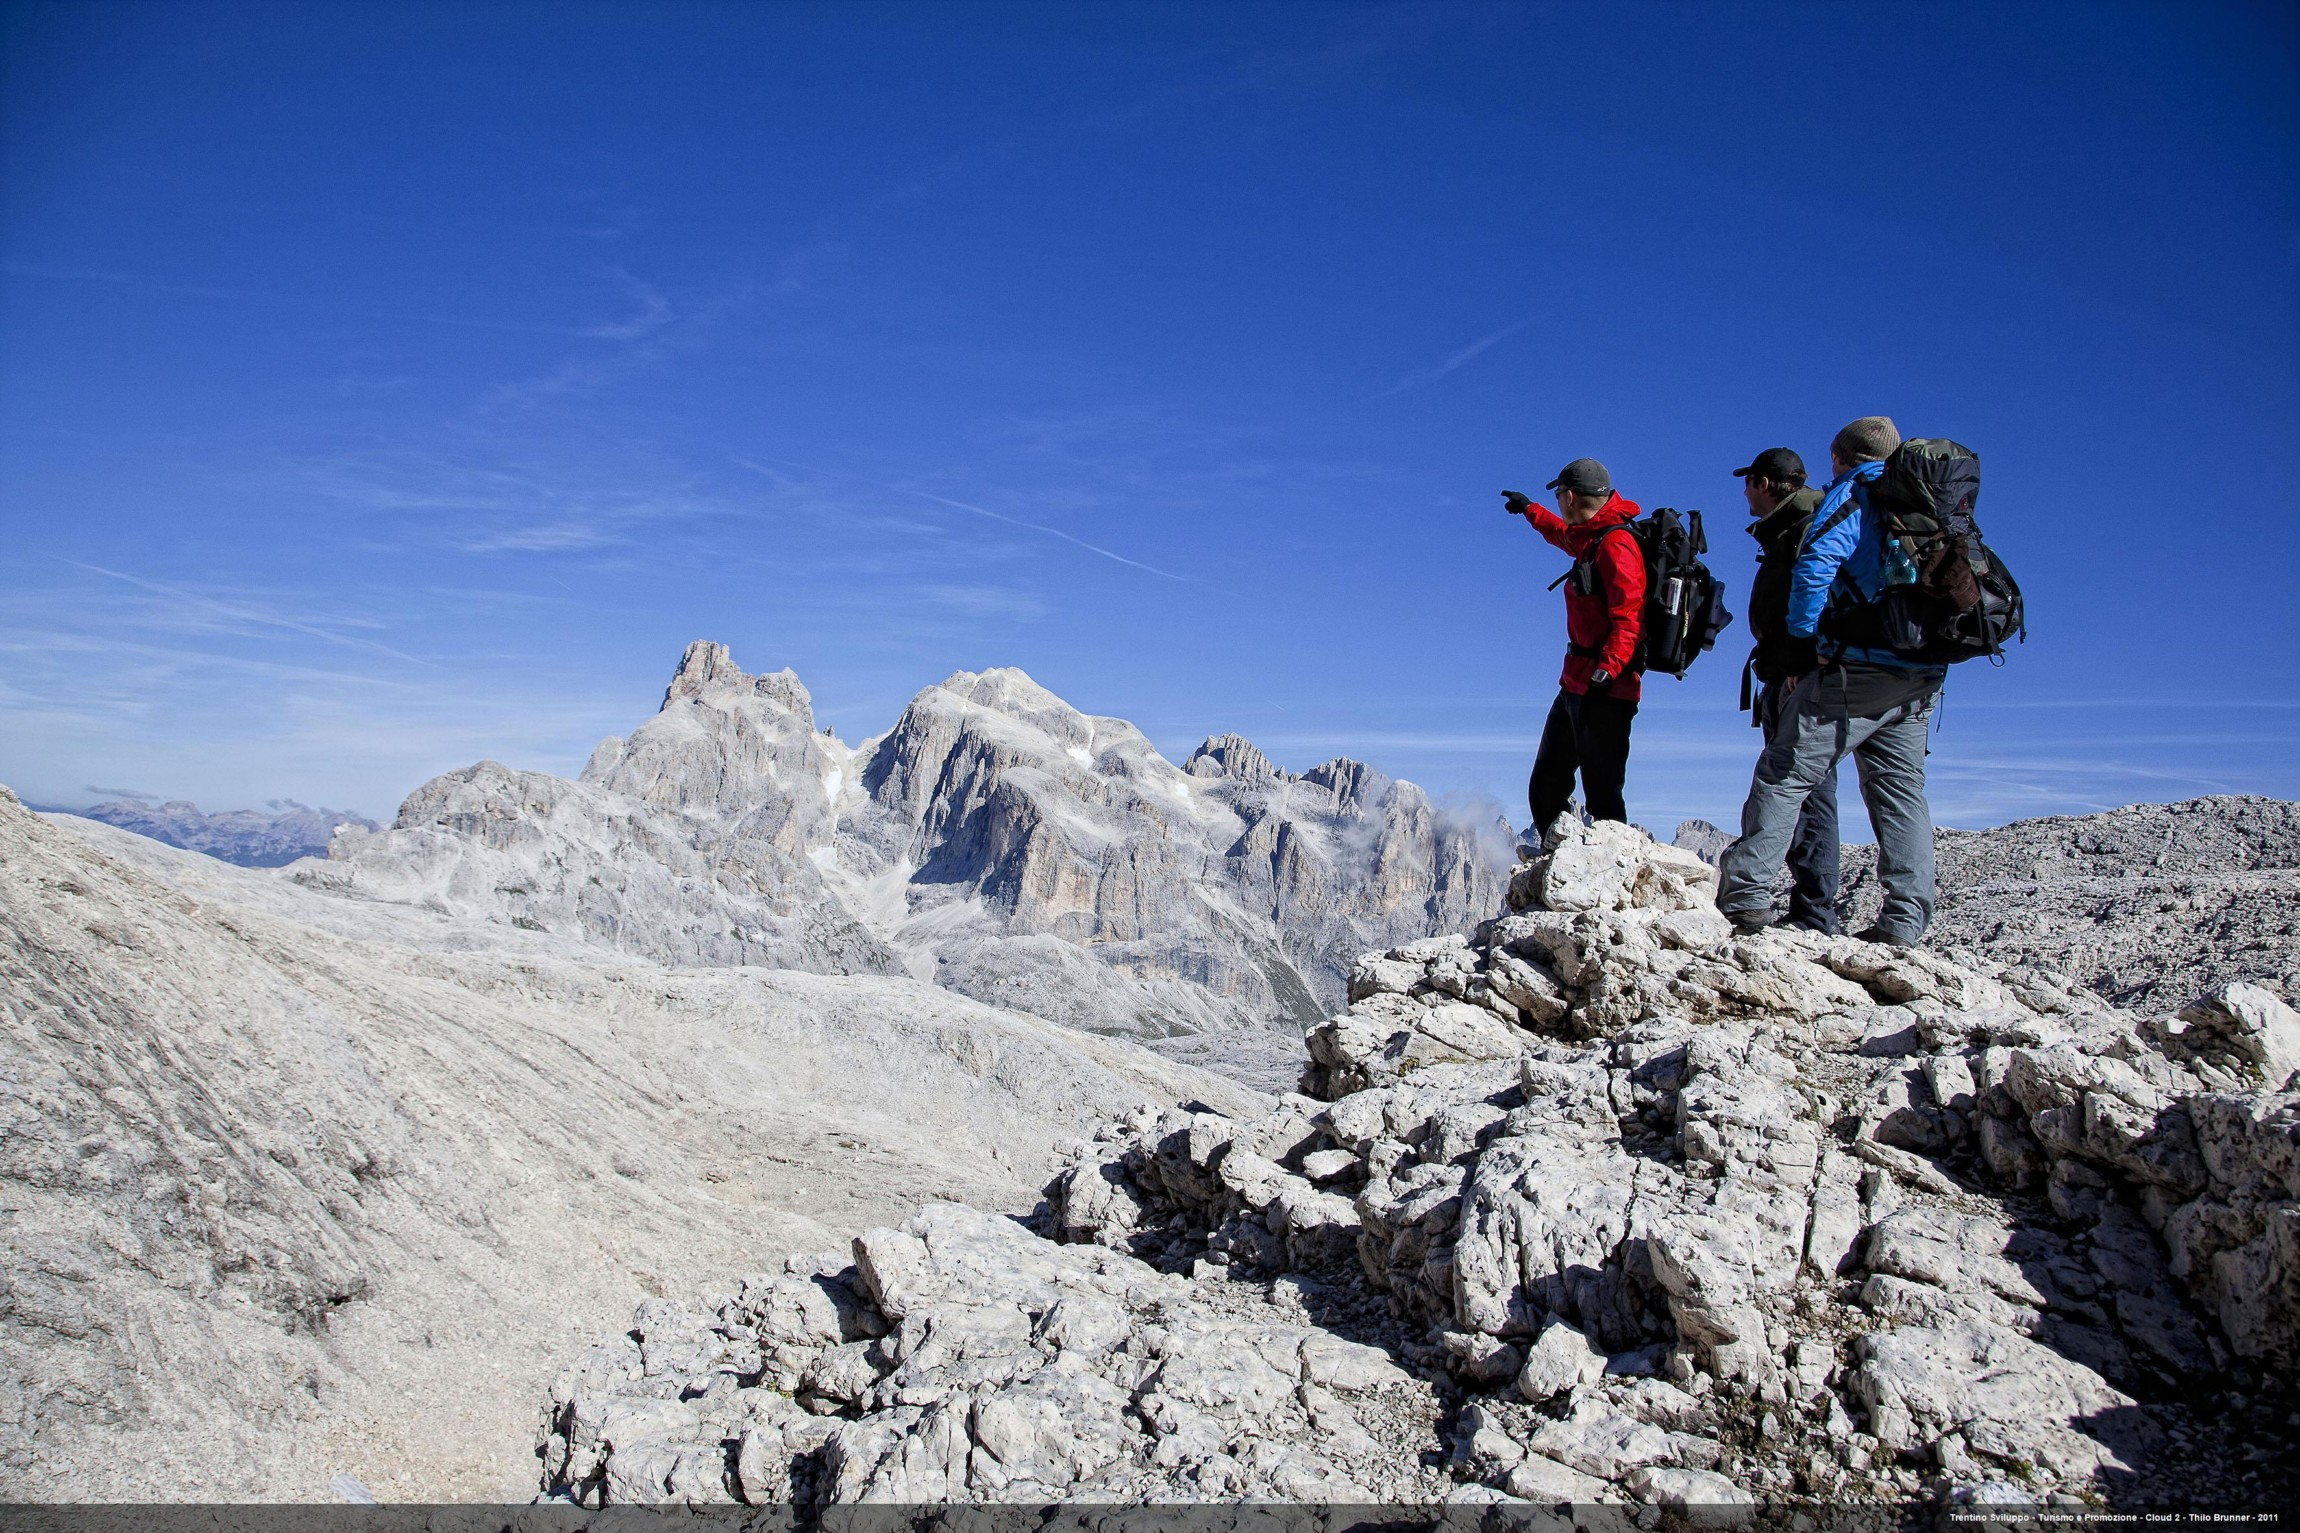 Trentino, land of outdoor experience